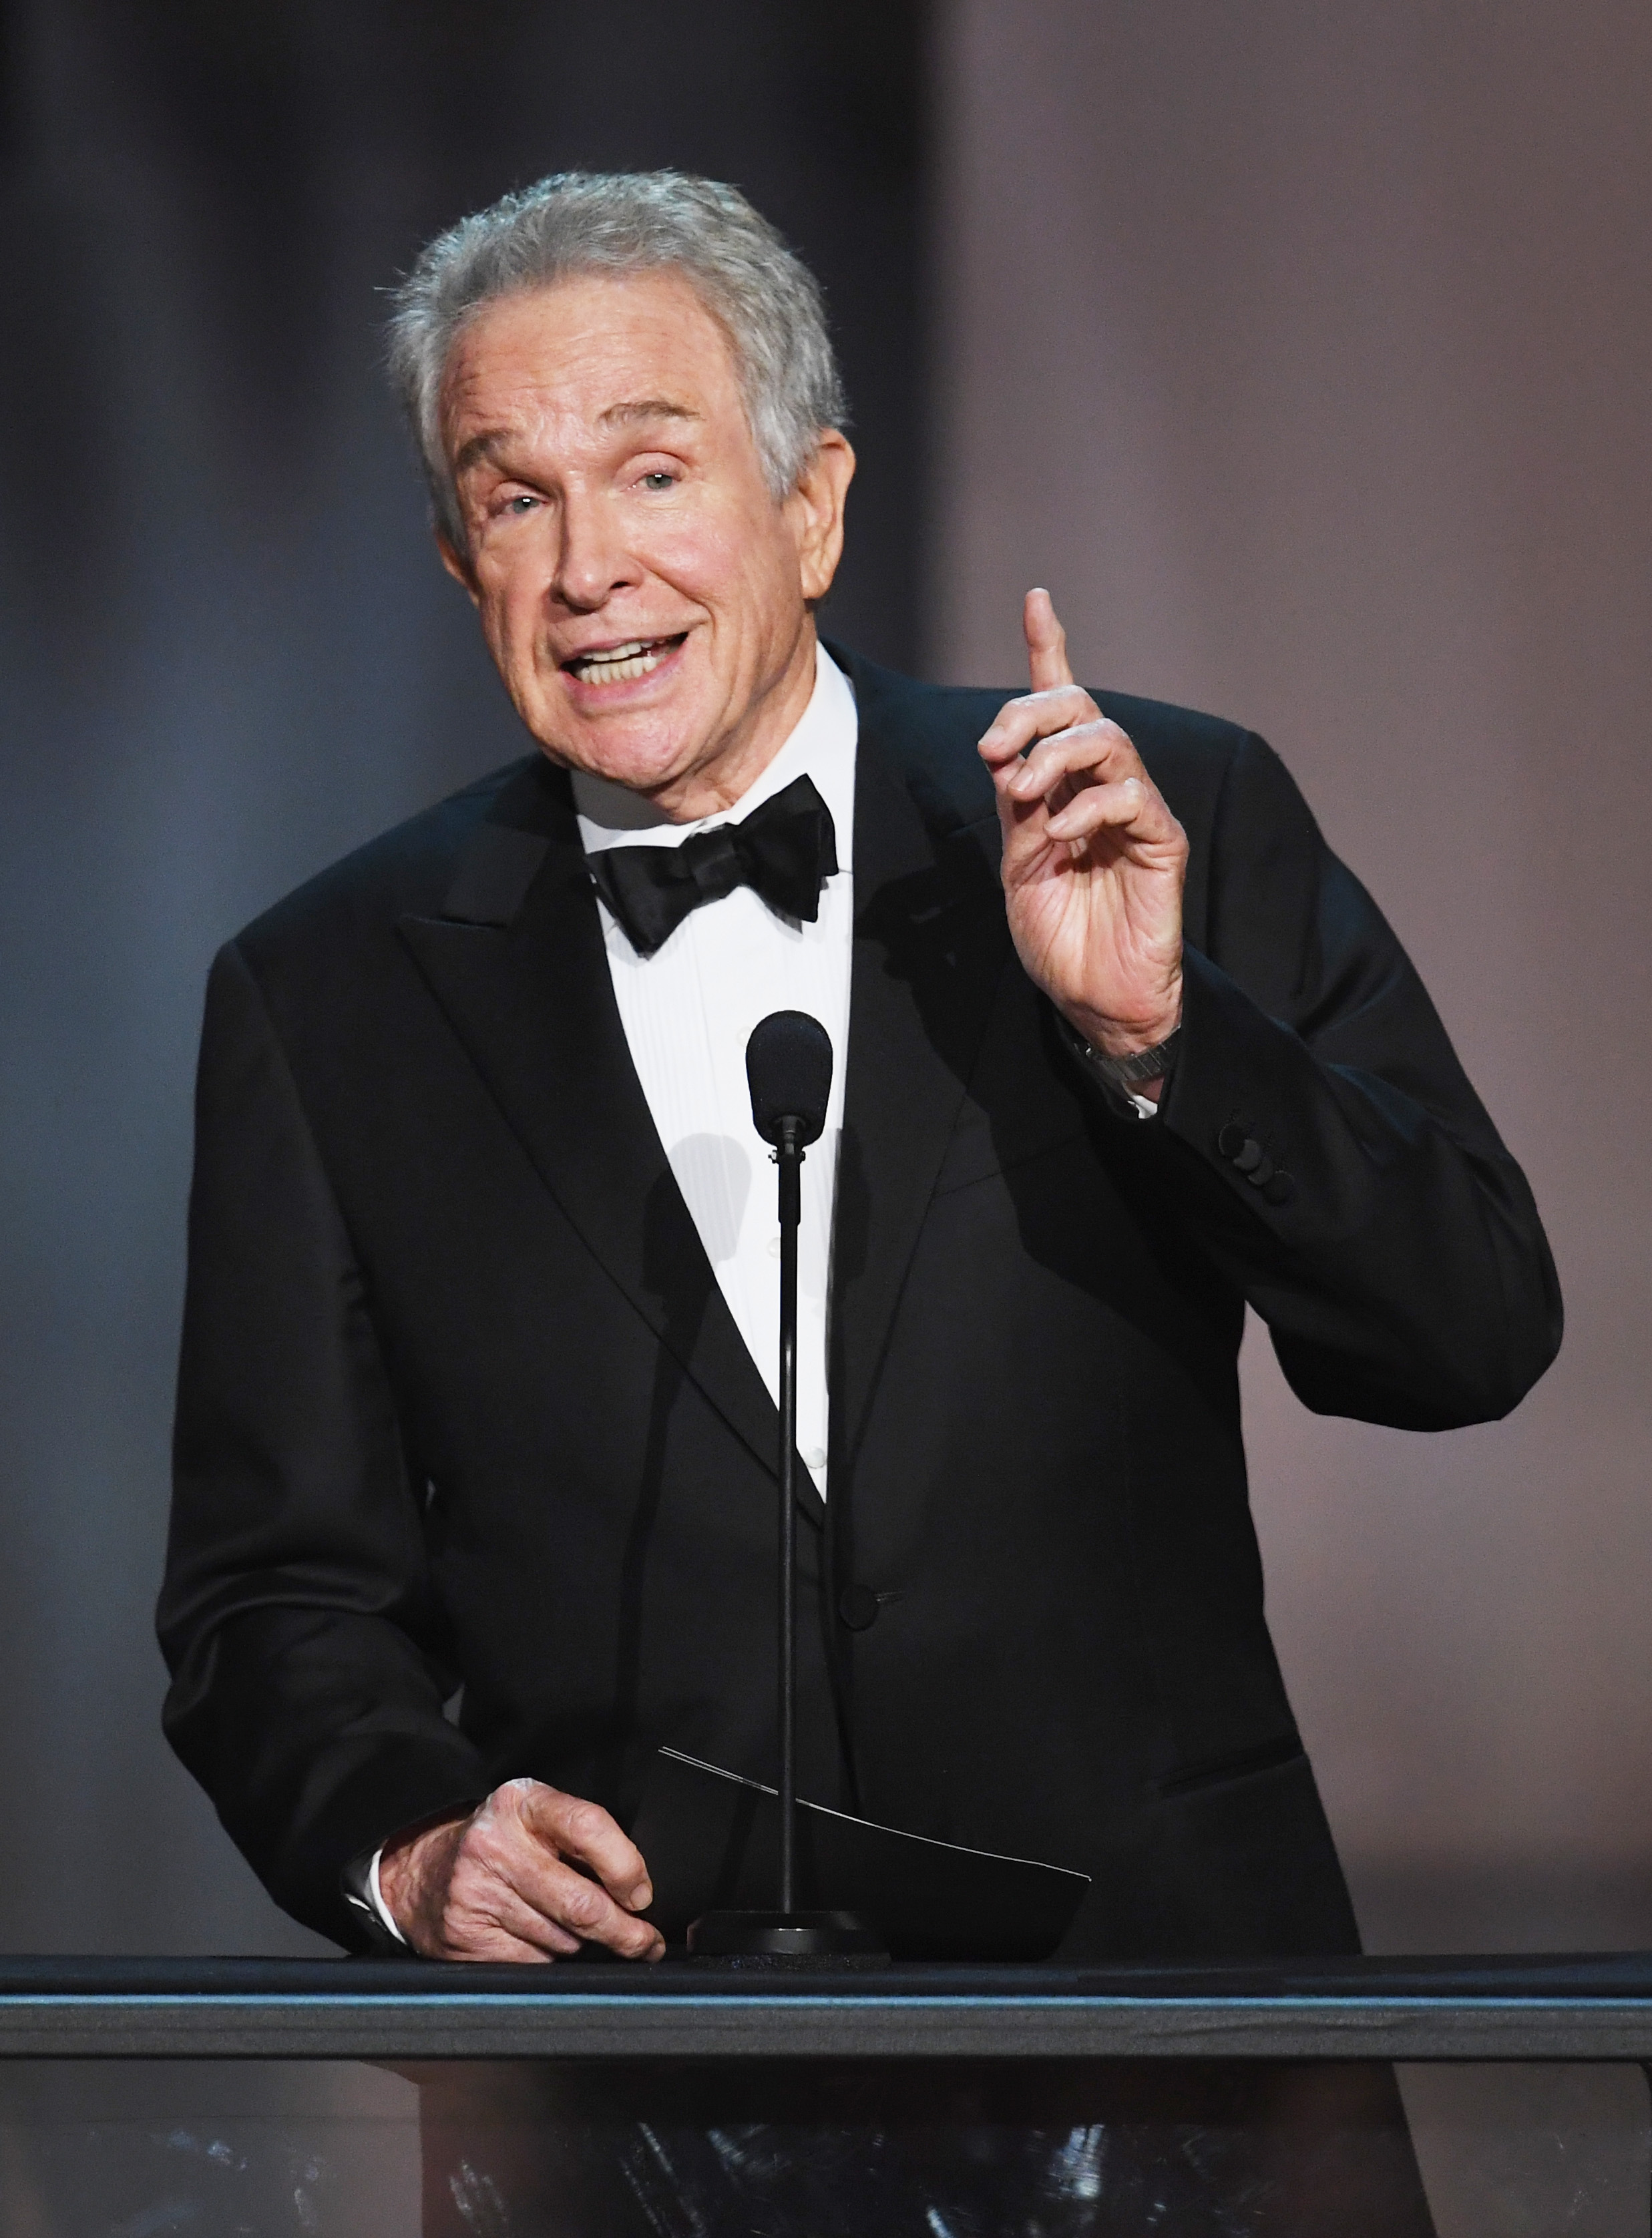 Warren Beatty onstage during the 90th Annual Academy Awards at the Dolby Theatre at Hollywood & Highland Center on March 4, 2018 in Hollywood, California | Photo: Getty Images